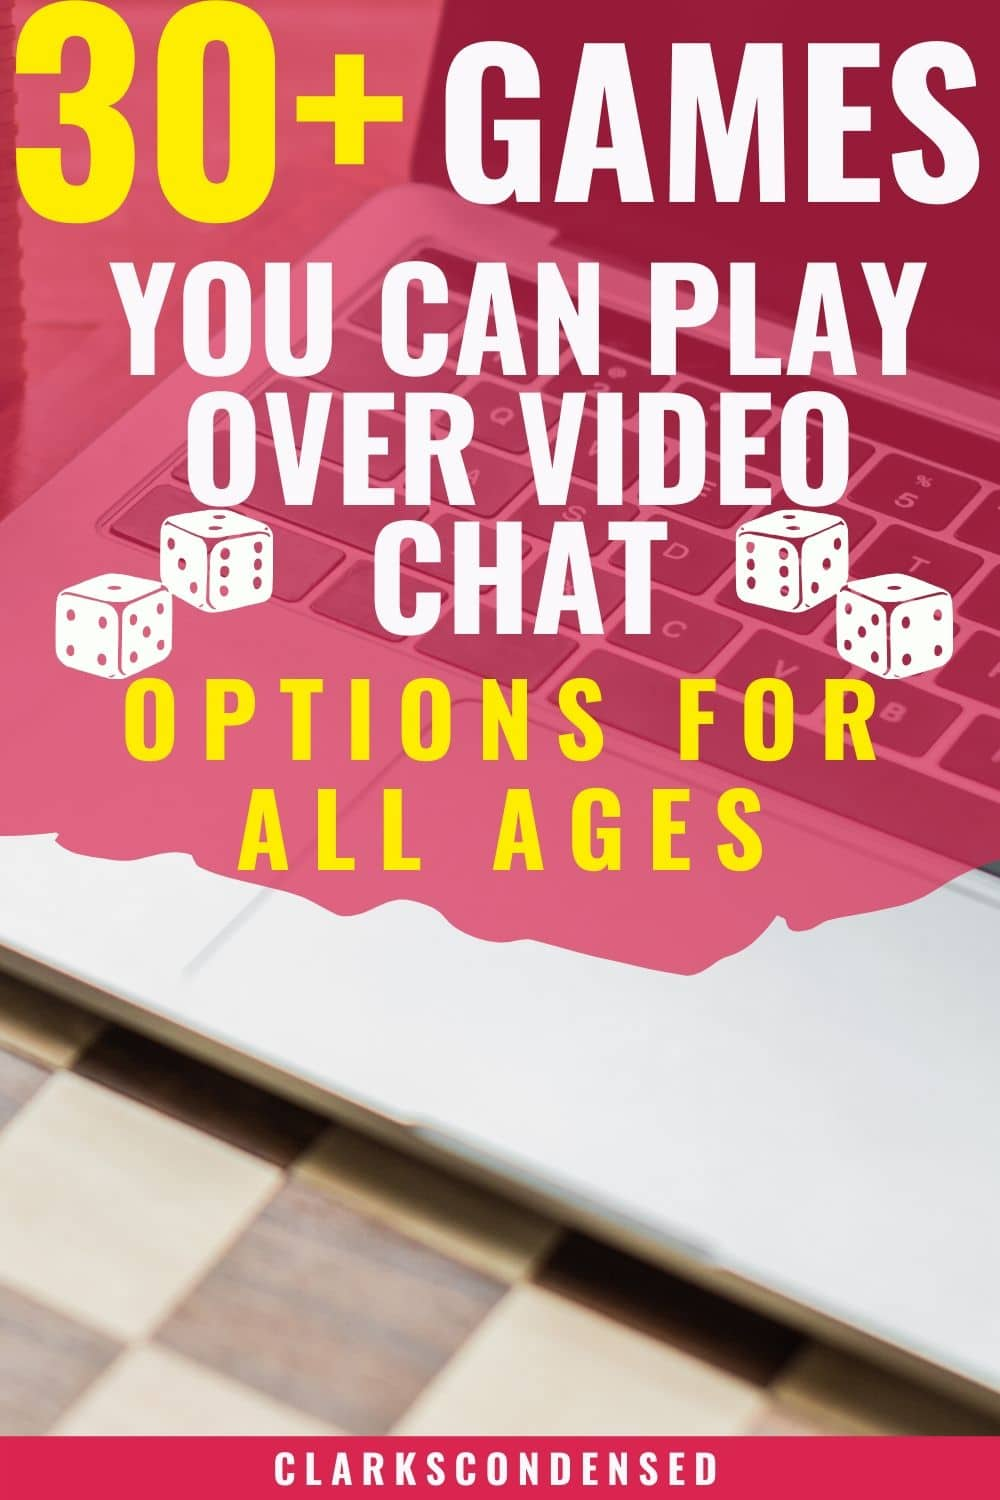 30+ Games You Can Play on FaceTime, Skype for All Ages in 2020